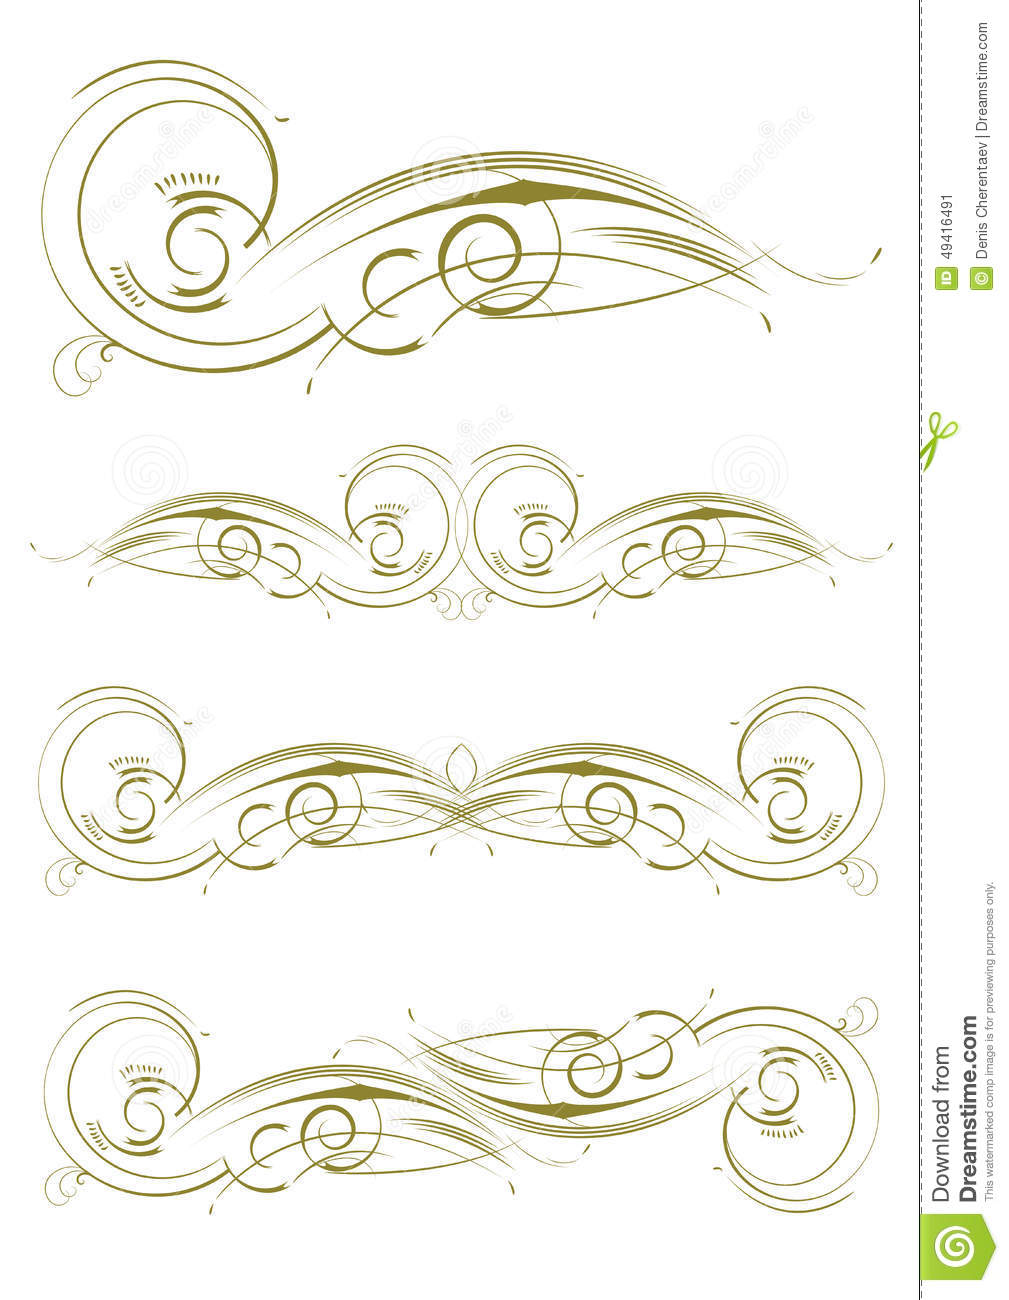 floral patterns set stock vector illustration of exquisite 49416491